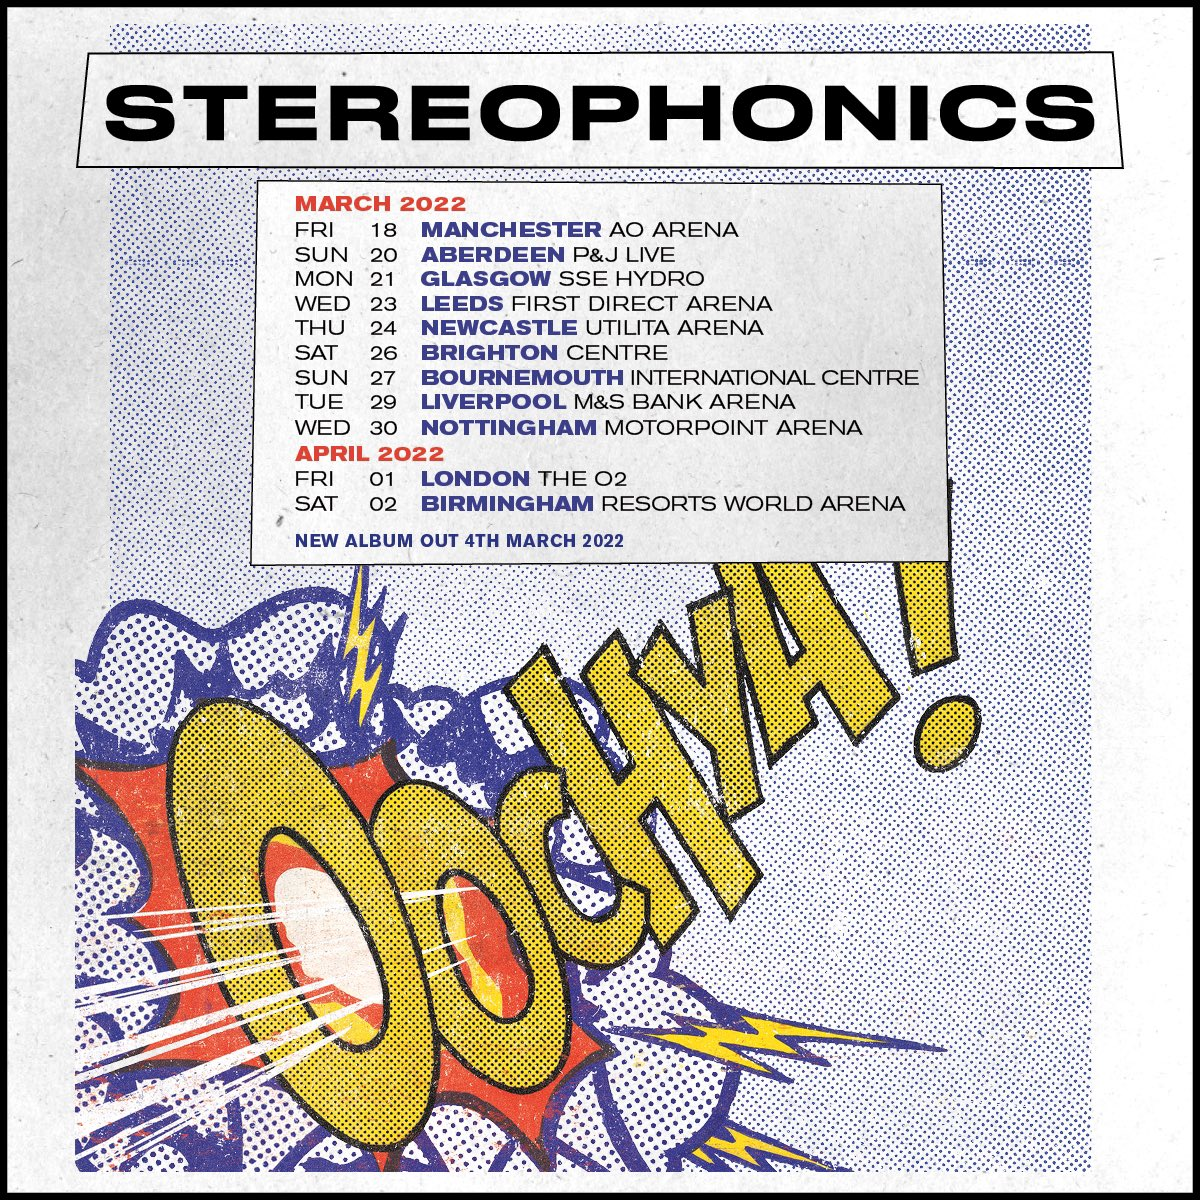 💥 'Oochya!' tour alert! We'll be heading back on the road next March/April. Pre-order 'Oochya!' on any format from the official store by midnight Tues Sept 7th for priority access to the 'Oochya! Arena Tour' on Weds: Stereophonics.lnk.to/officialstore